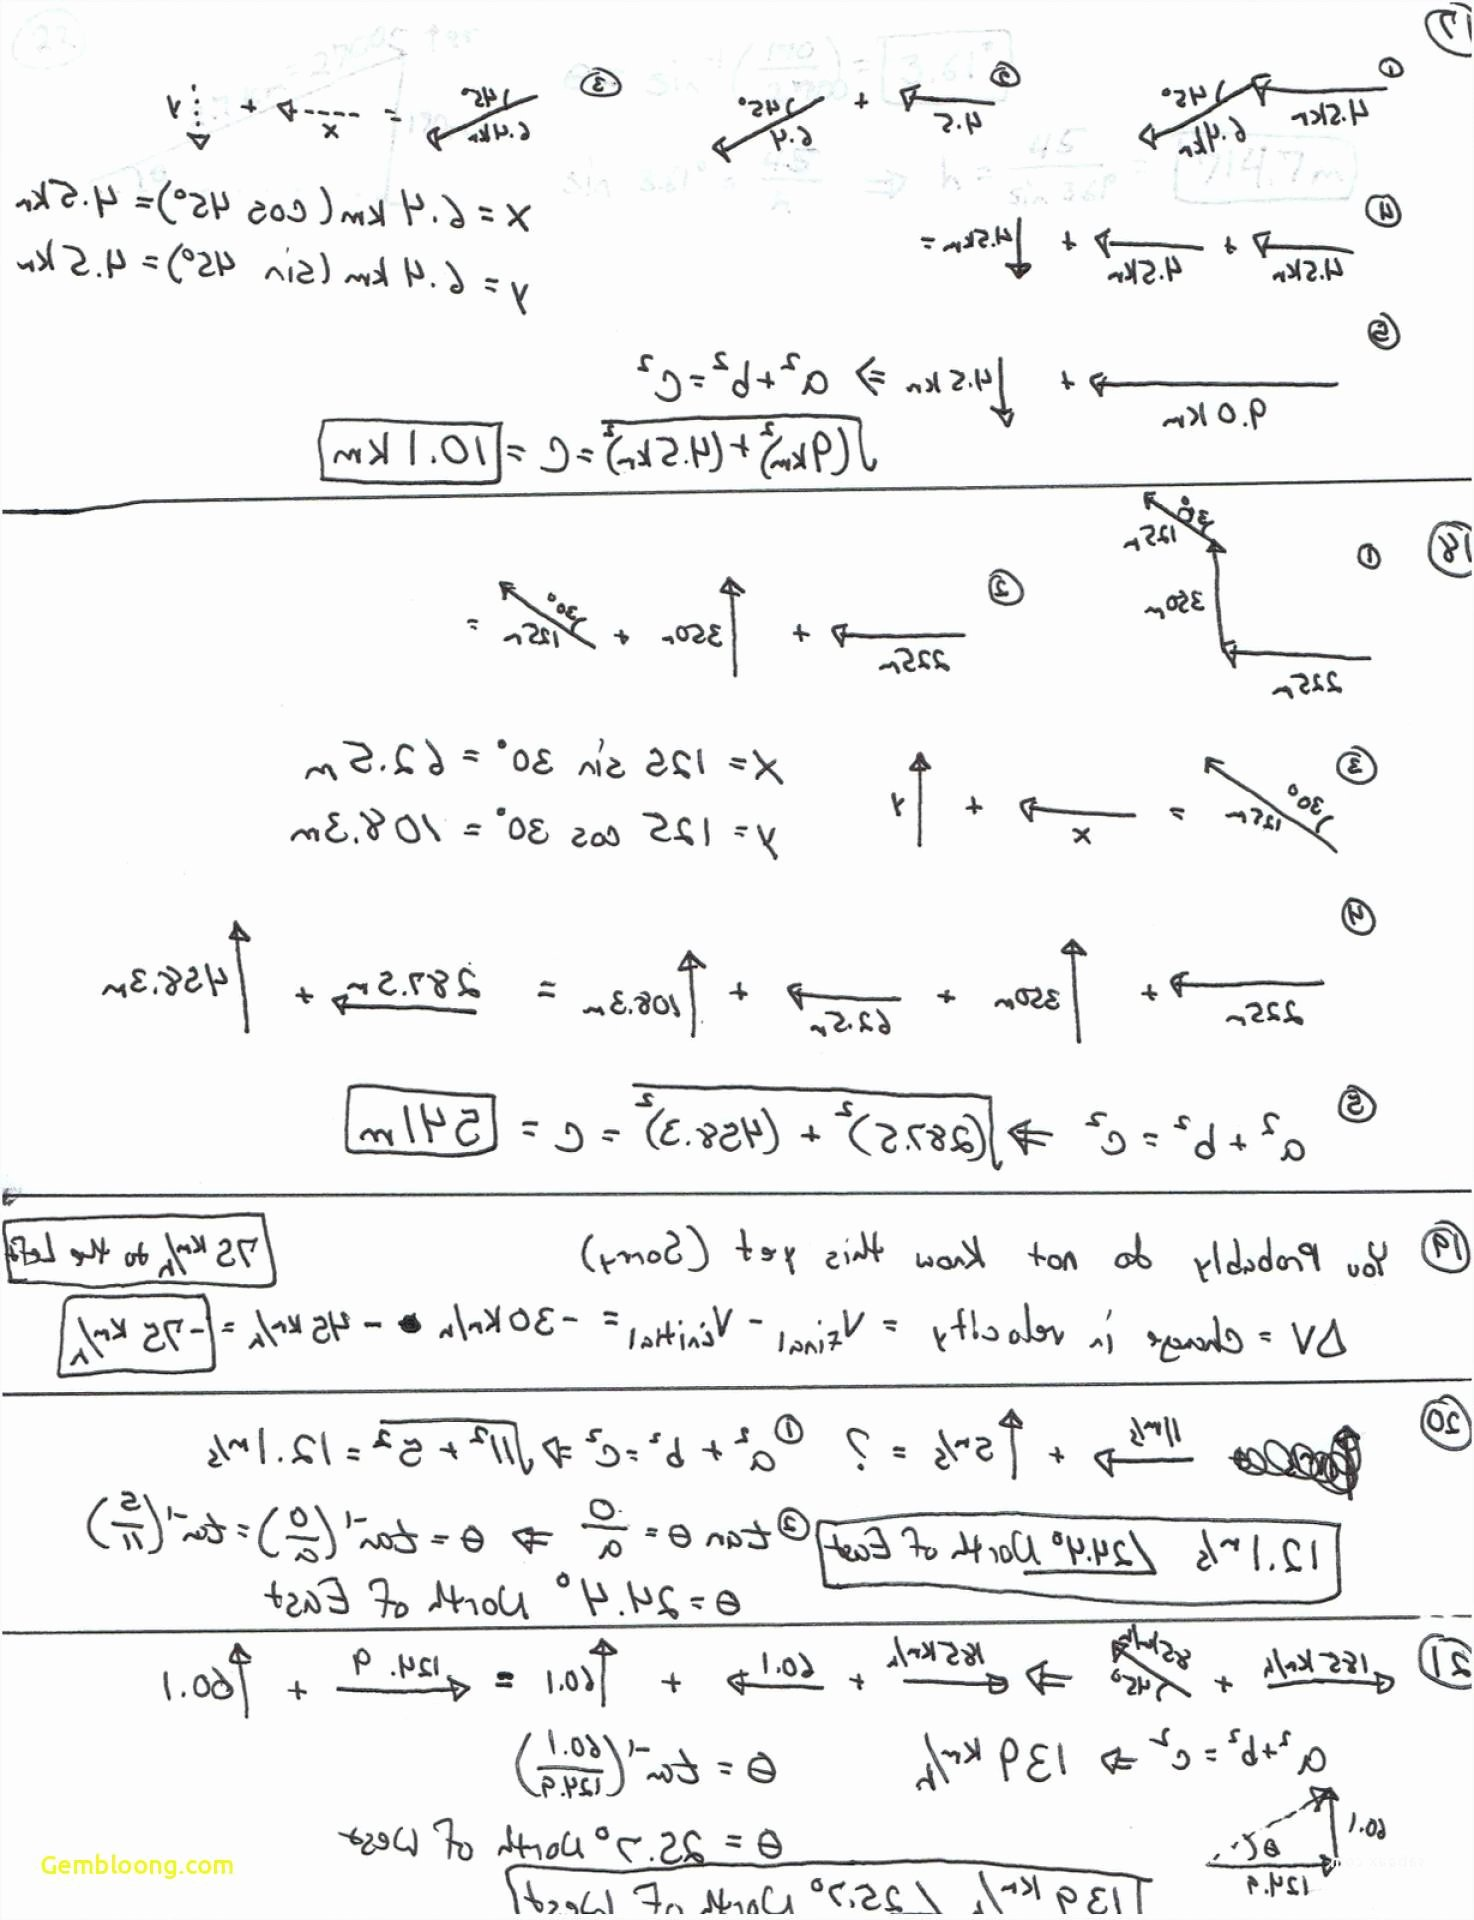 Polynomials Worksheet with Answers Unique Multiplying Polynomials Worksheet with Answers